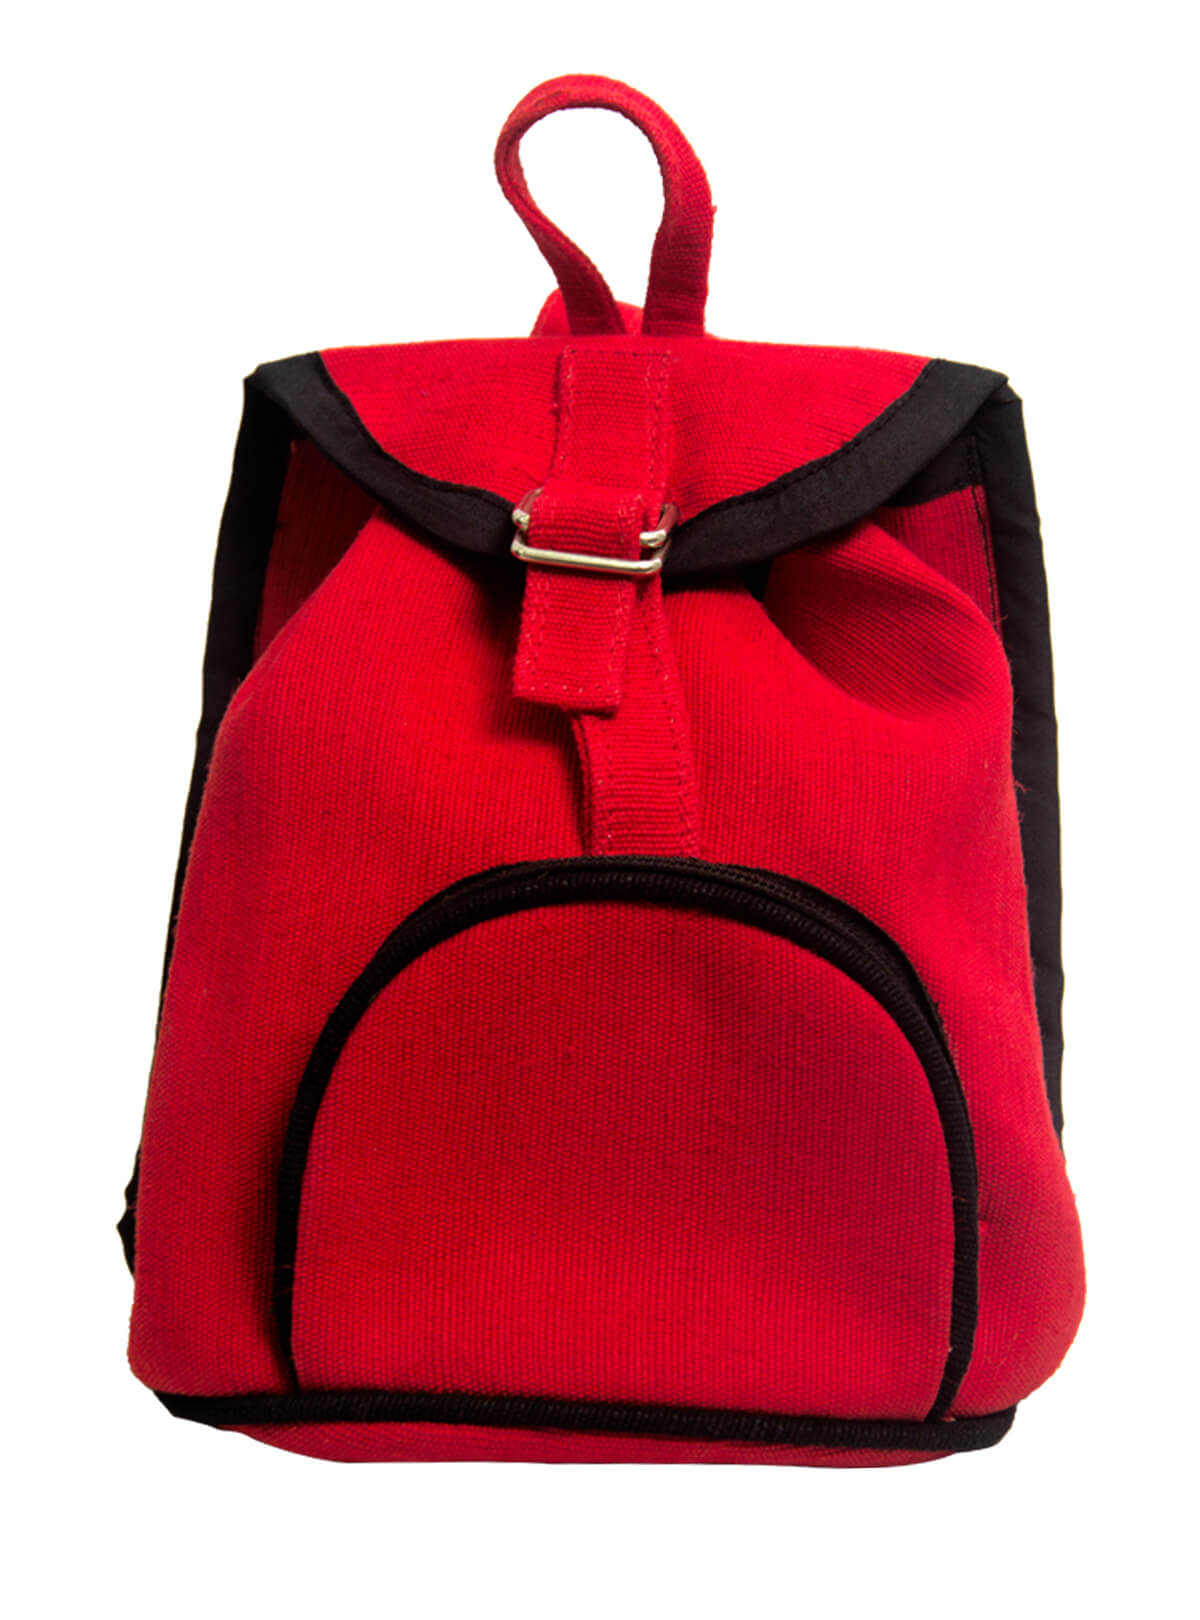 Carmine Red Baby Bag